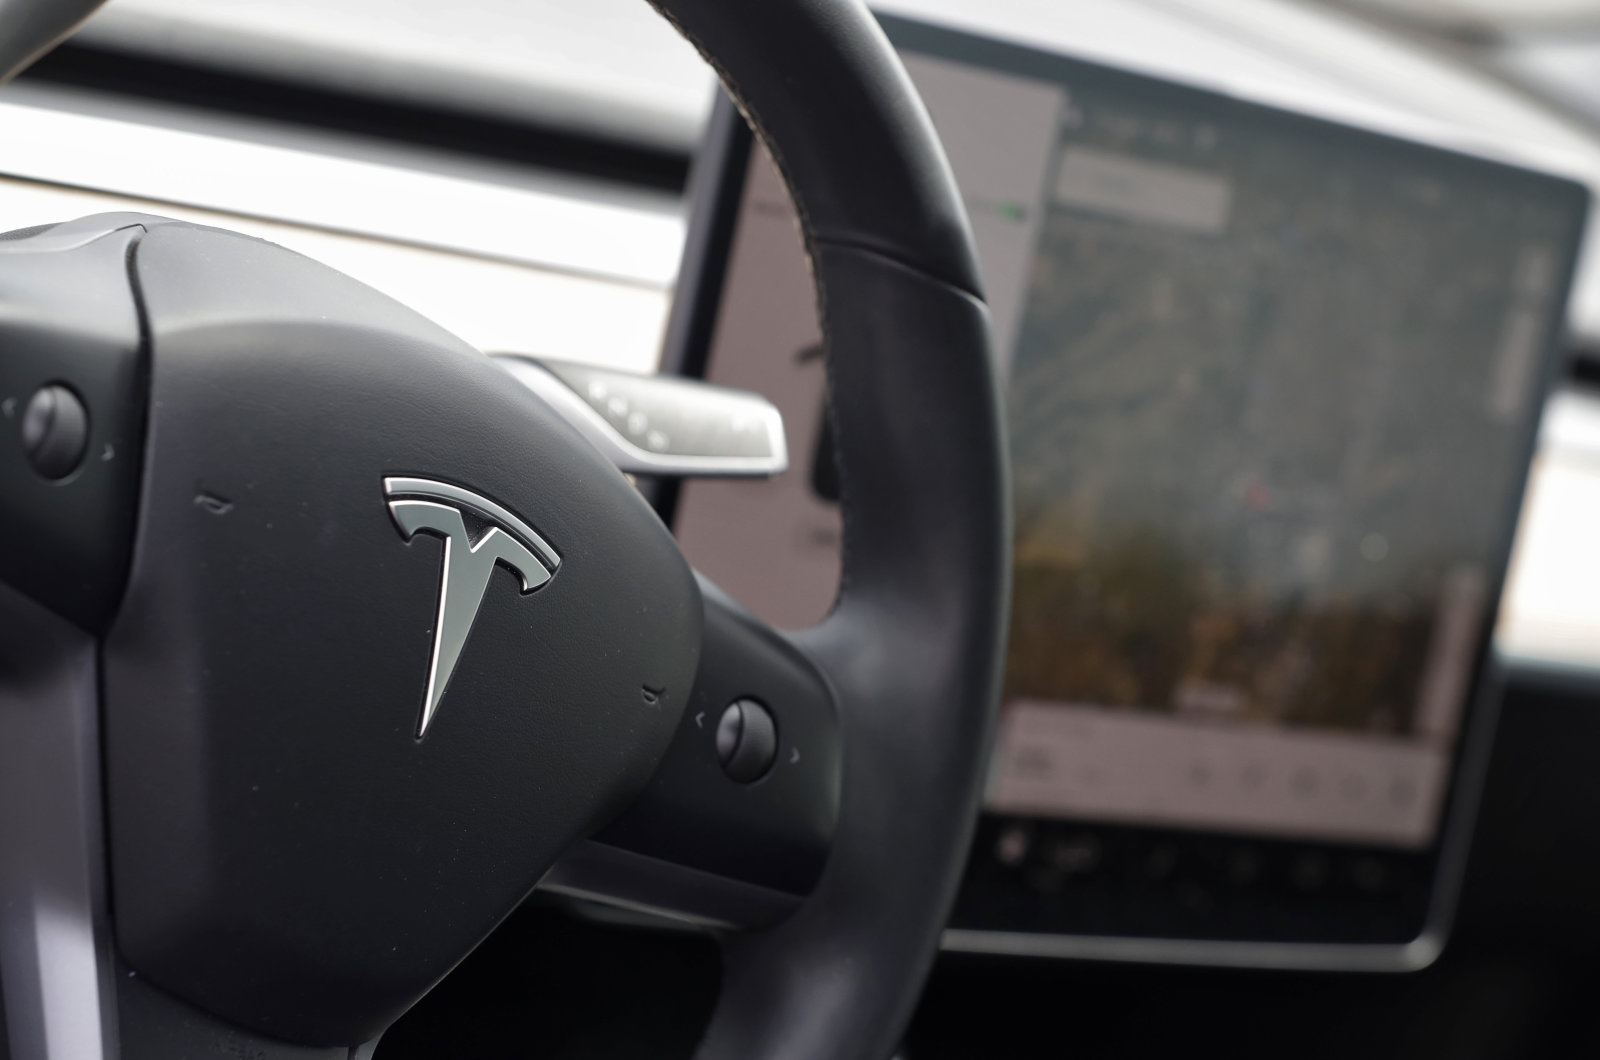 Tesla will start charging $10 per month for 'Premium' in-car data | DeviceDaily.com